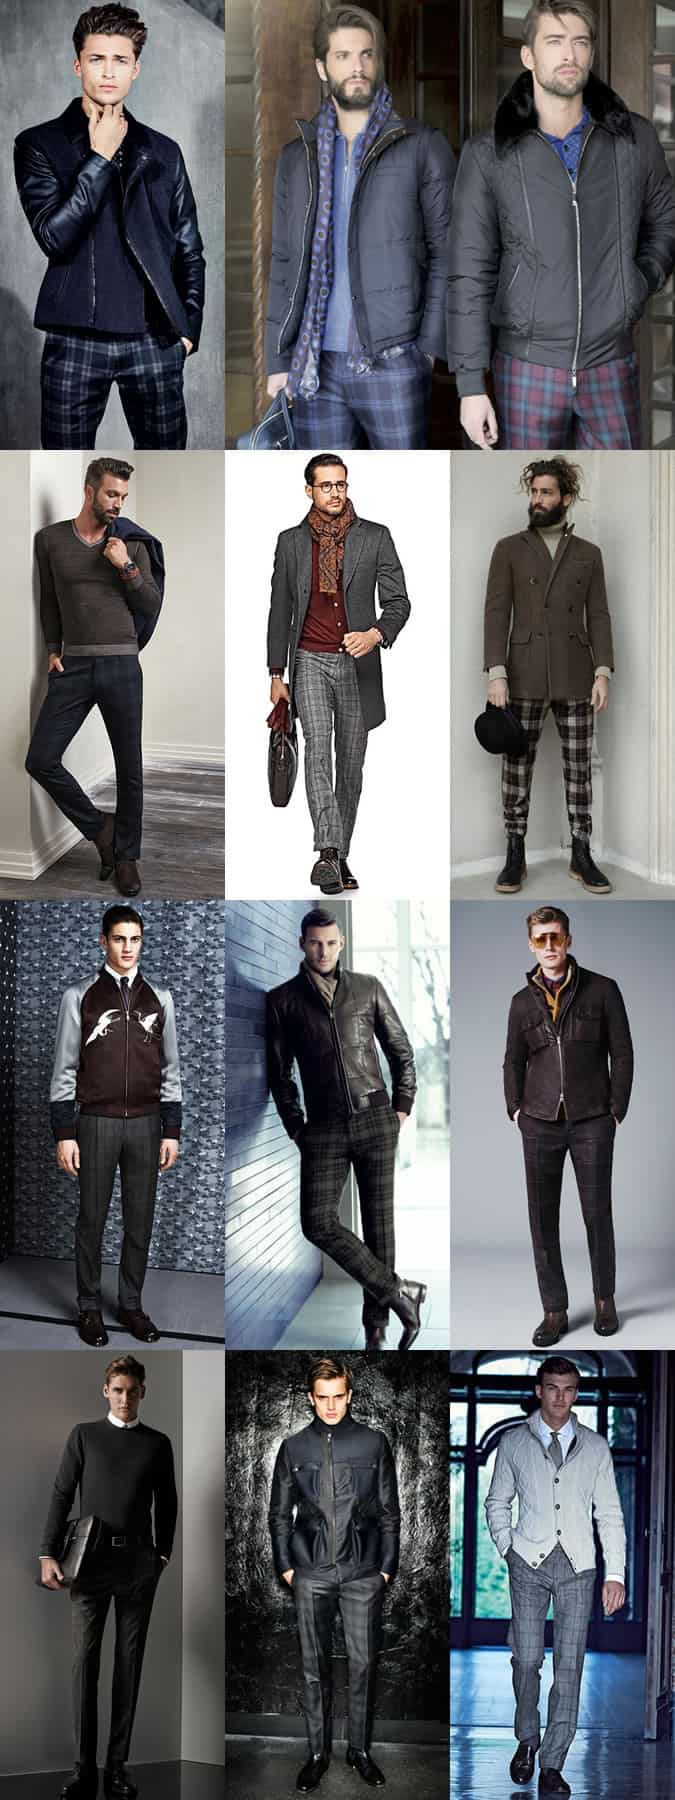 Men's Checked Trousers Outfit Inspiration Lookbook